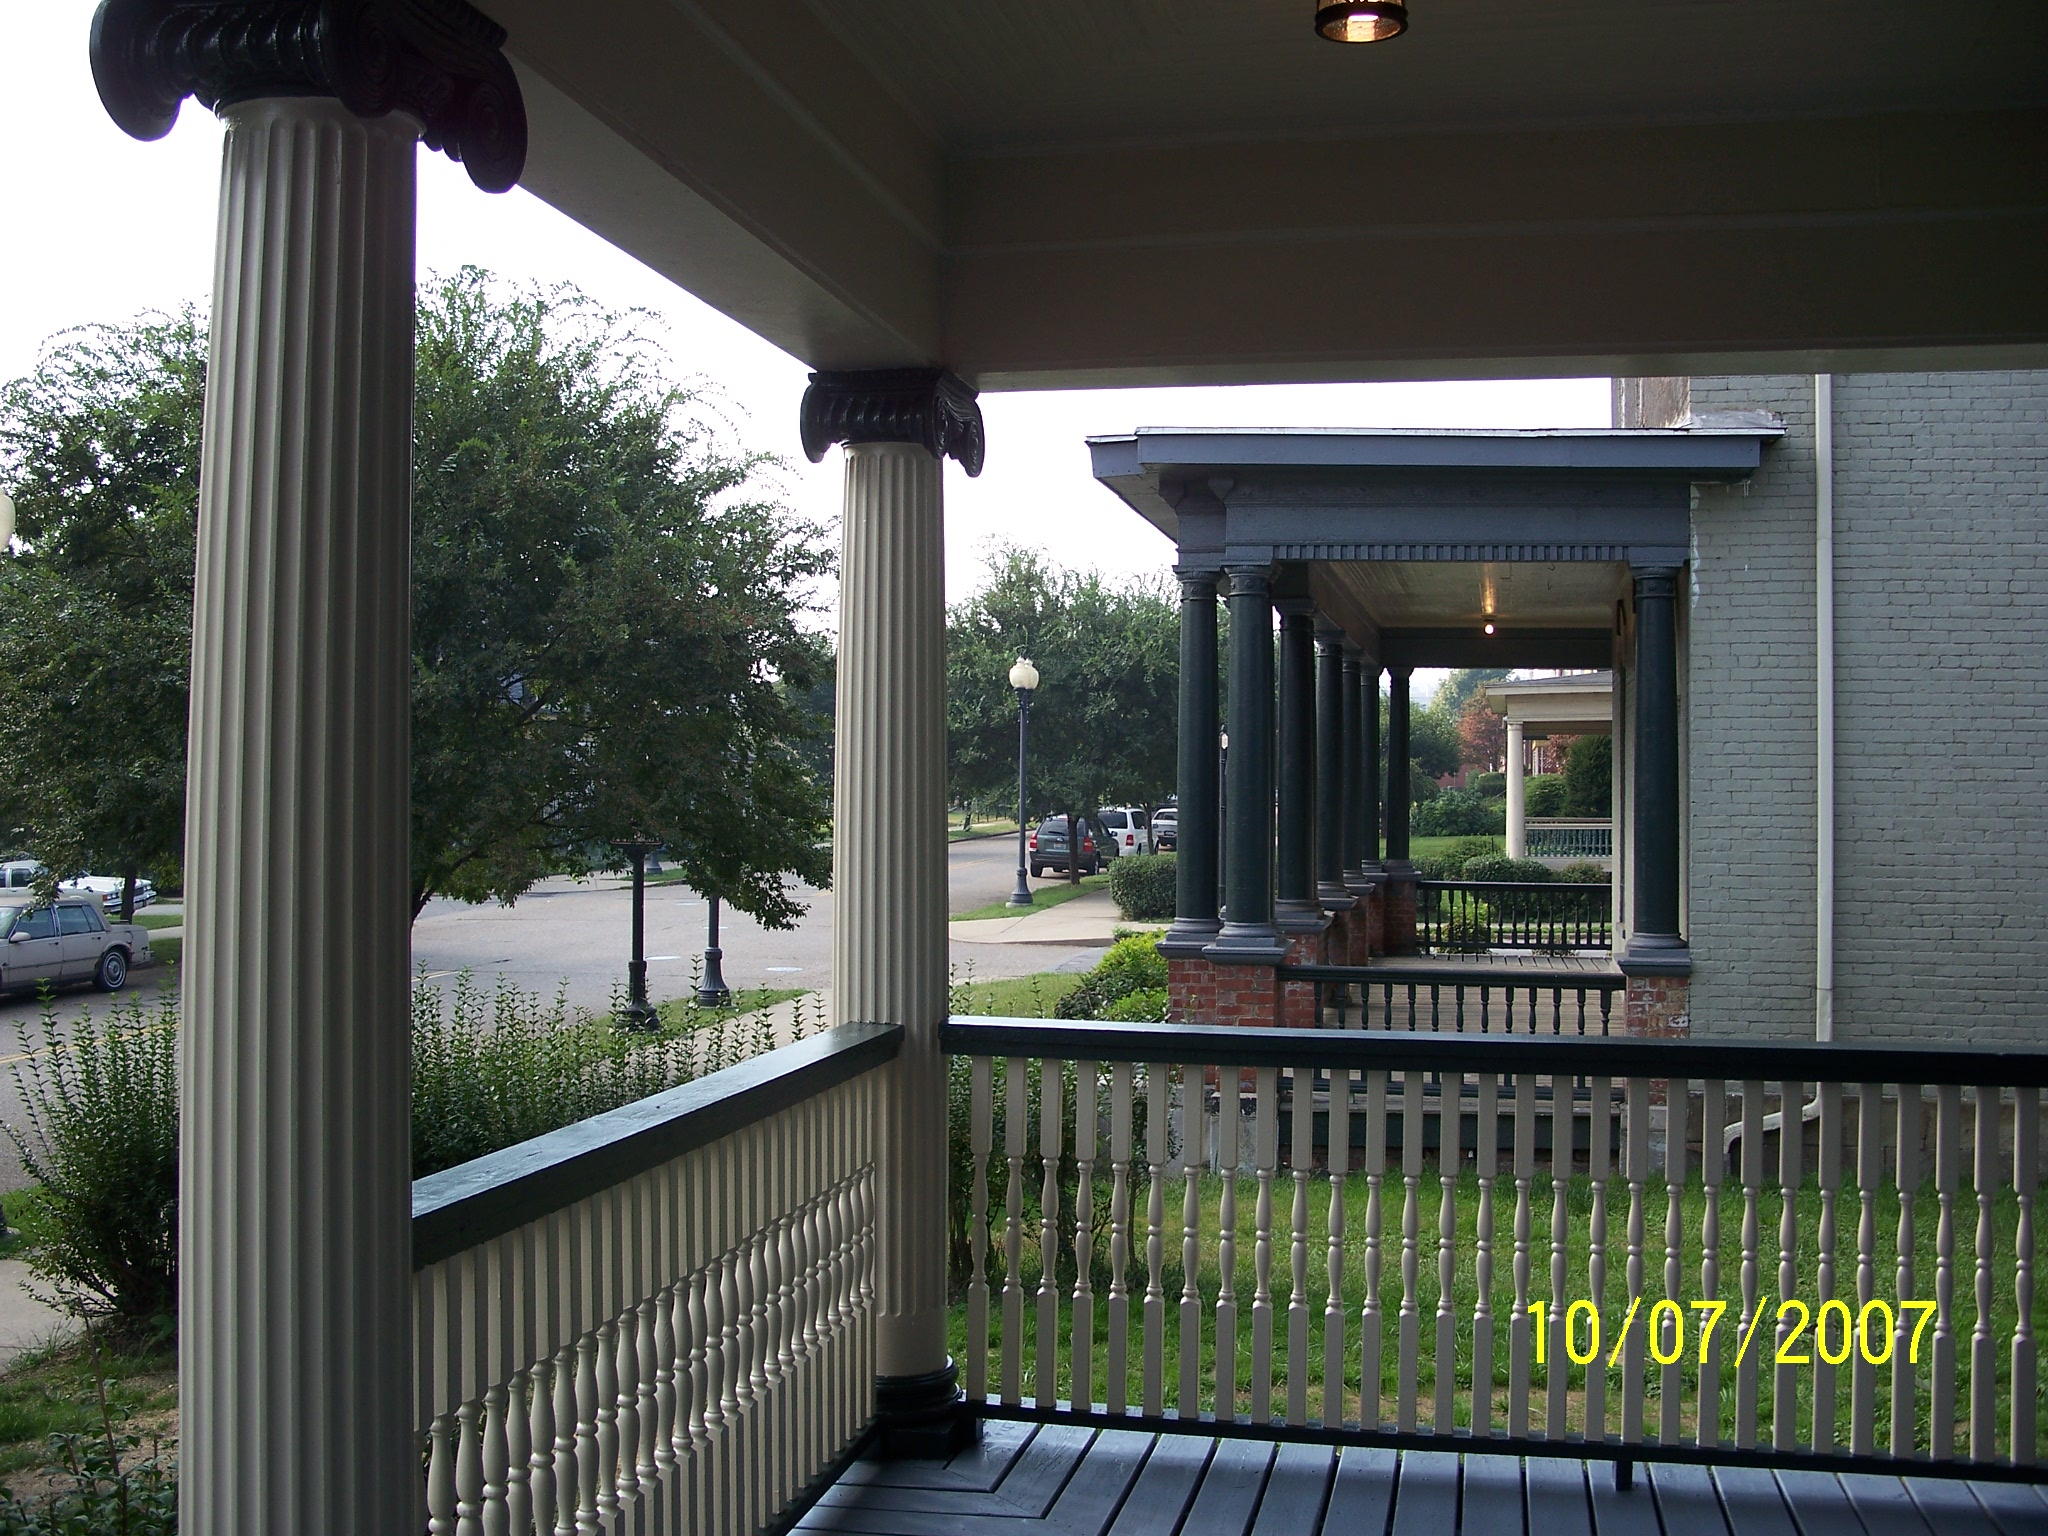 View South from the Westfall House Porch to the Weir Mansion Porch